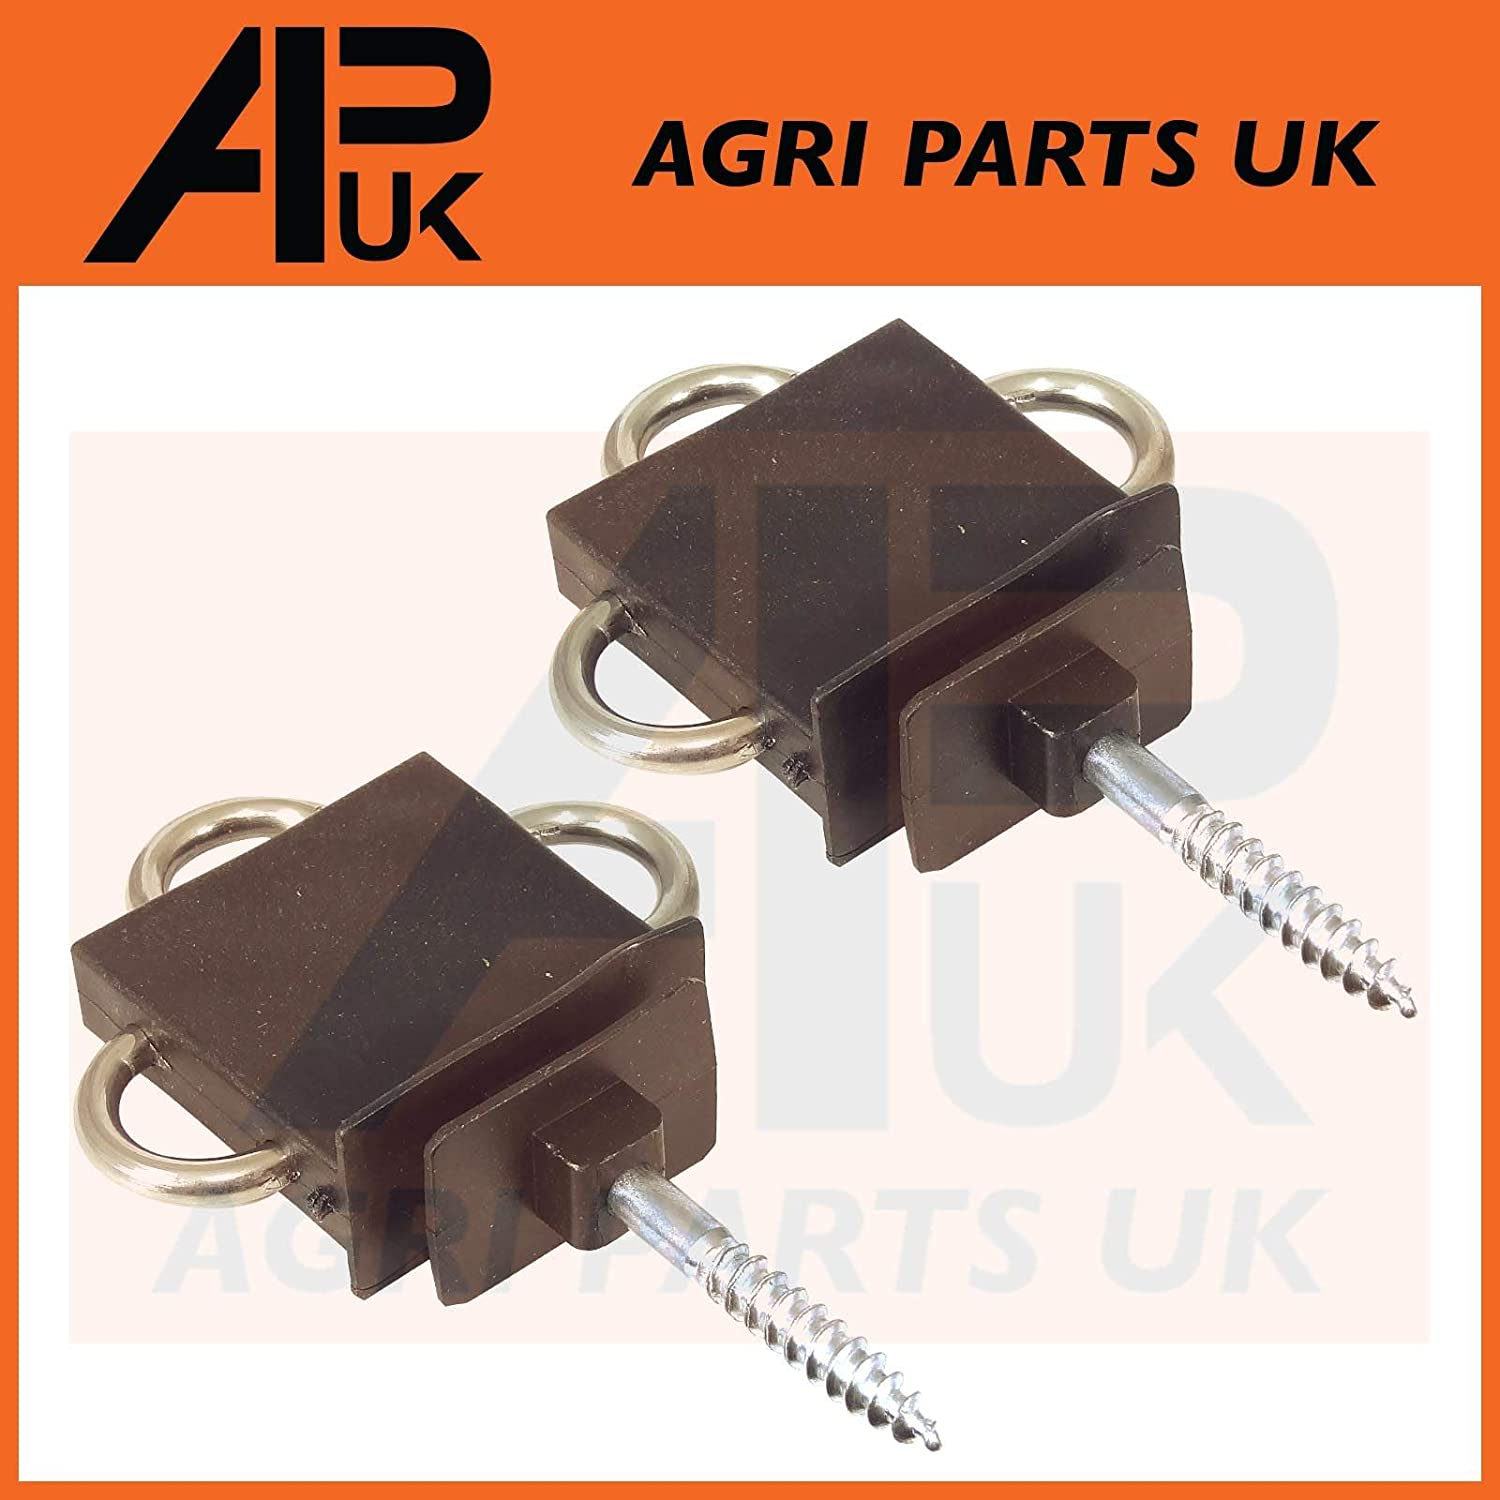 APUK 2x Three 3-Way Electric Fence Gate Handle Insulator Connection Connector